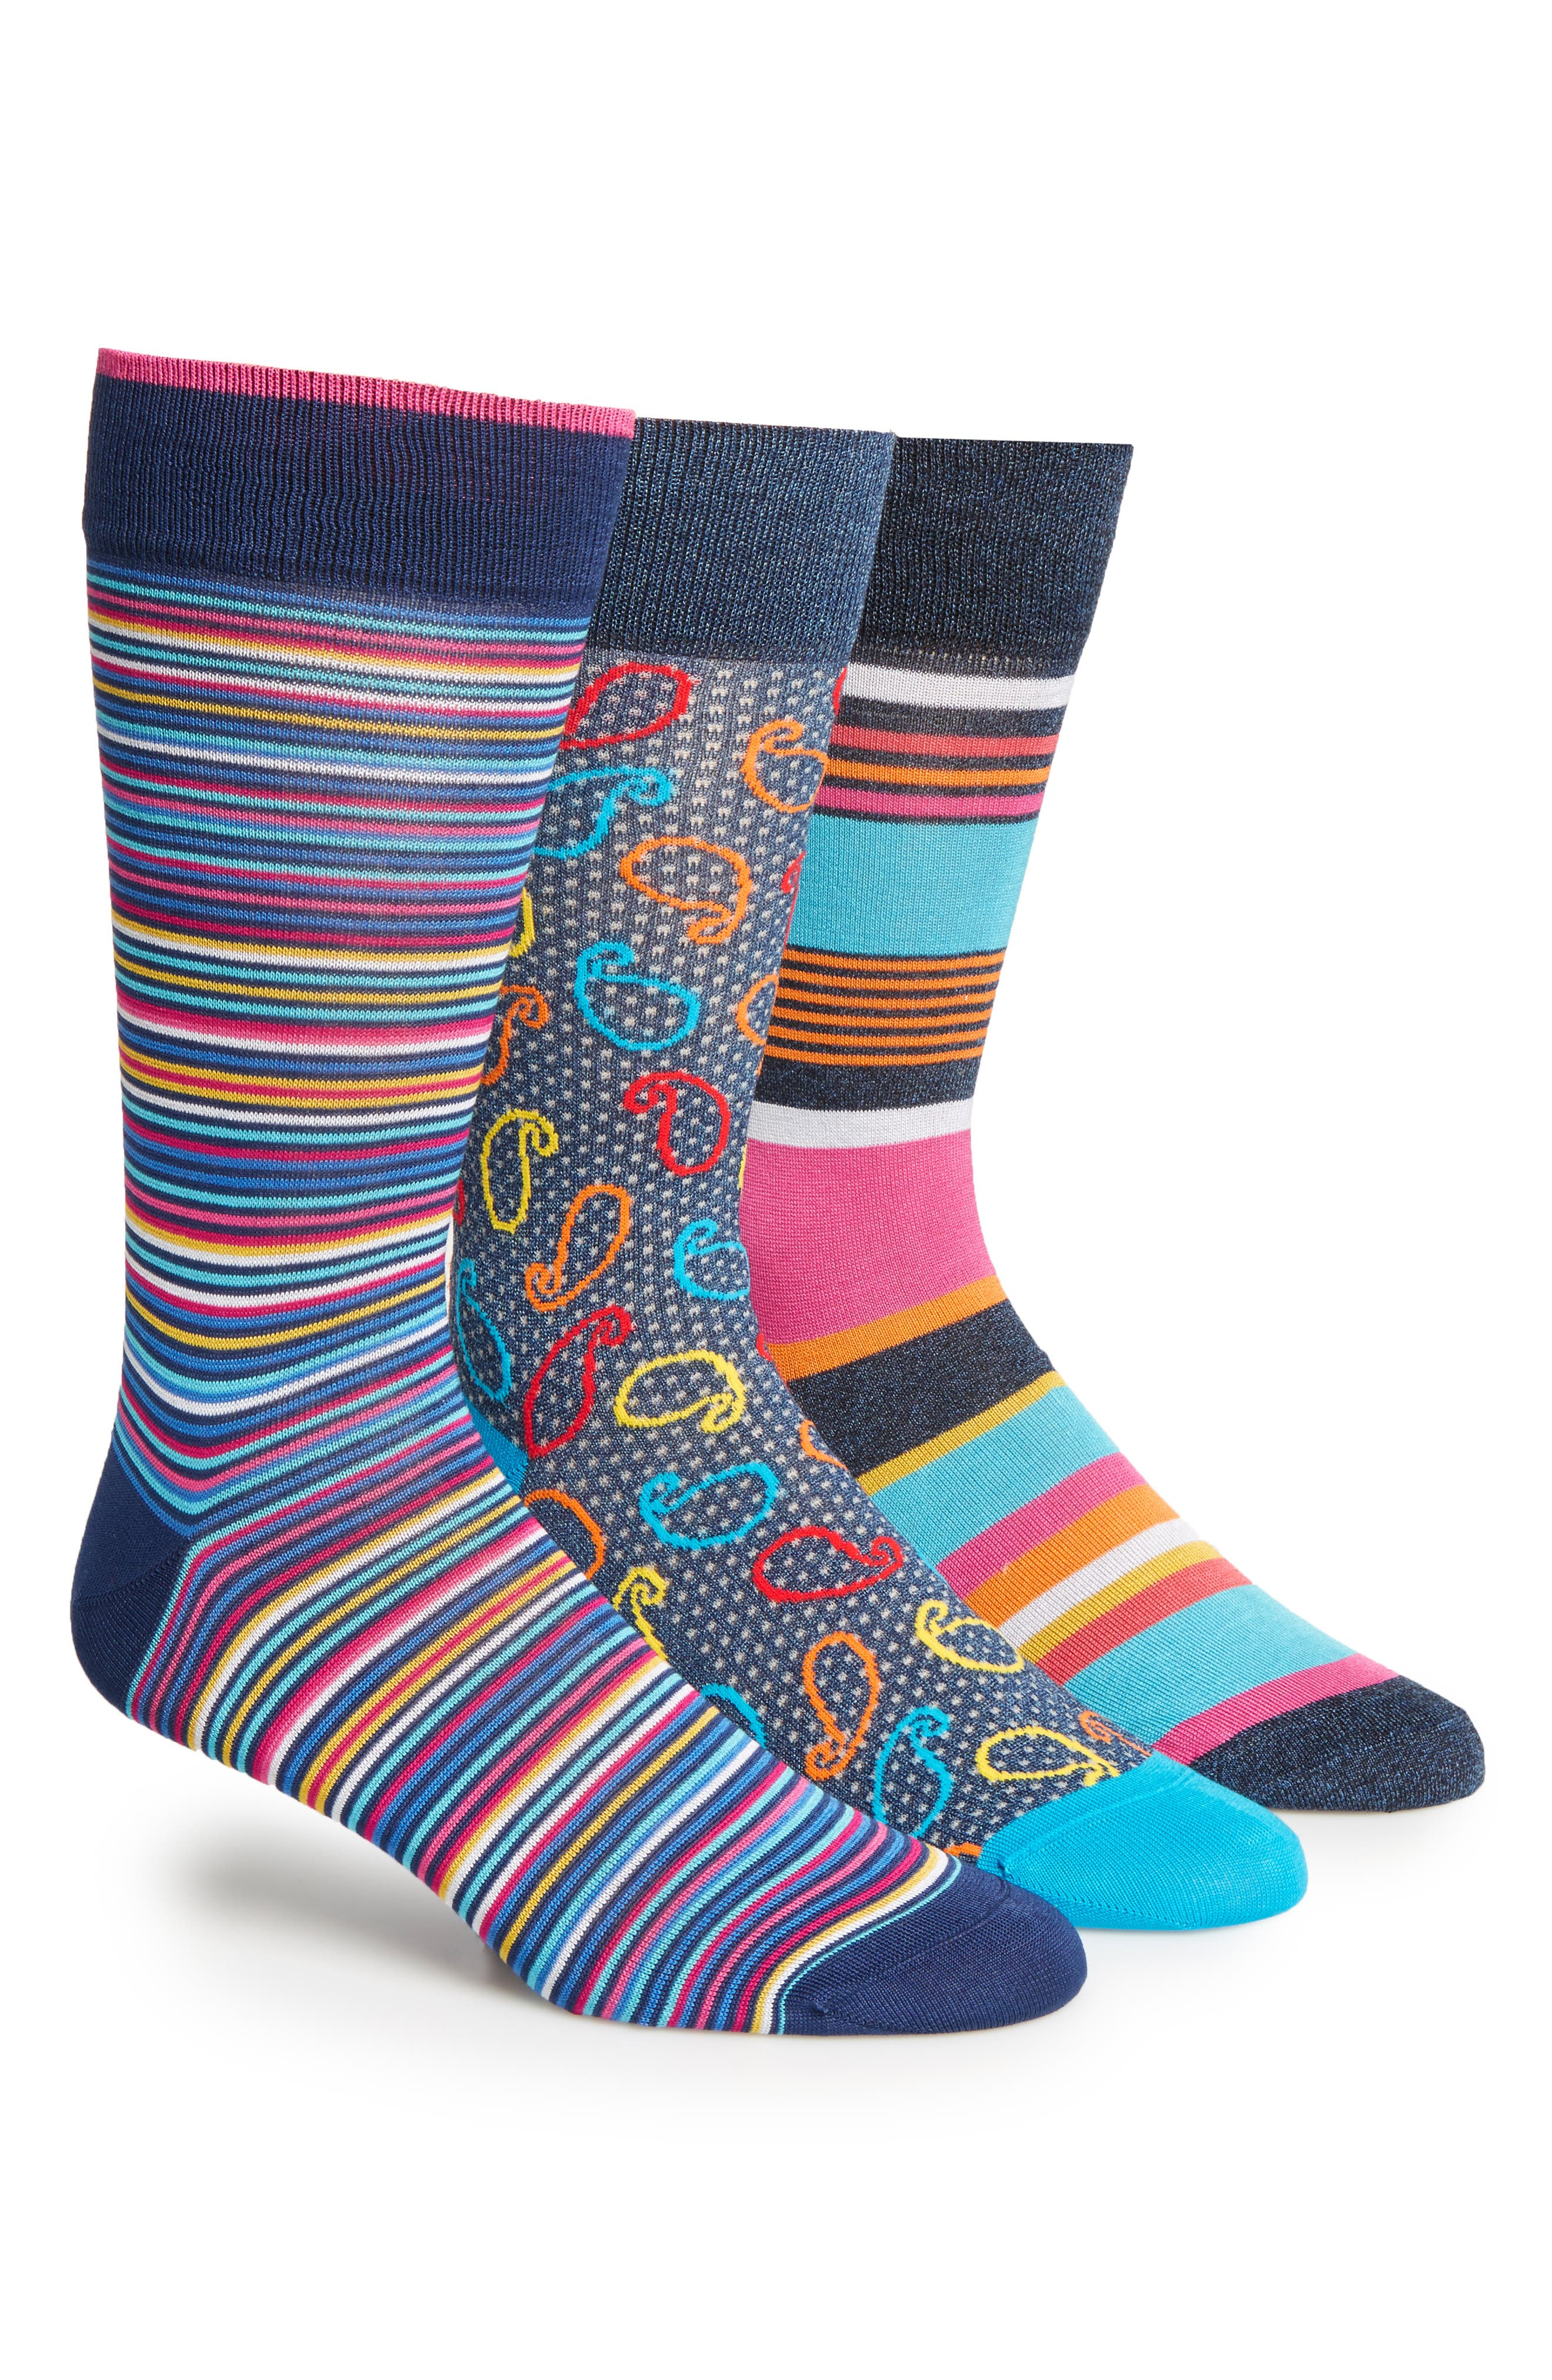 Main Image - Bugatchi 3-Pack Cotton Blend Socks